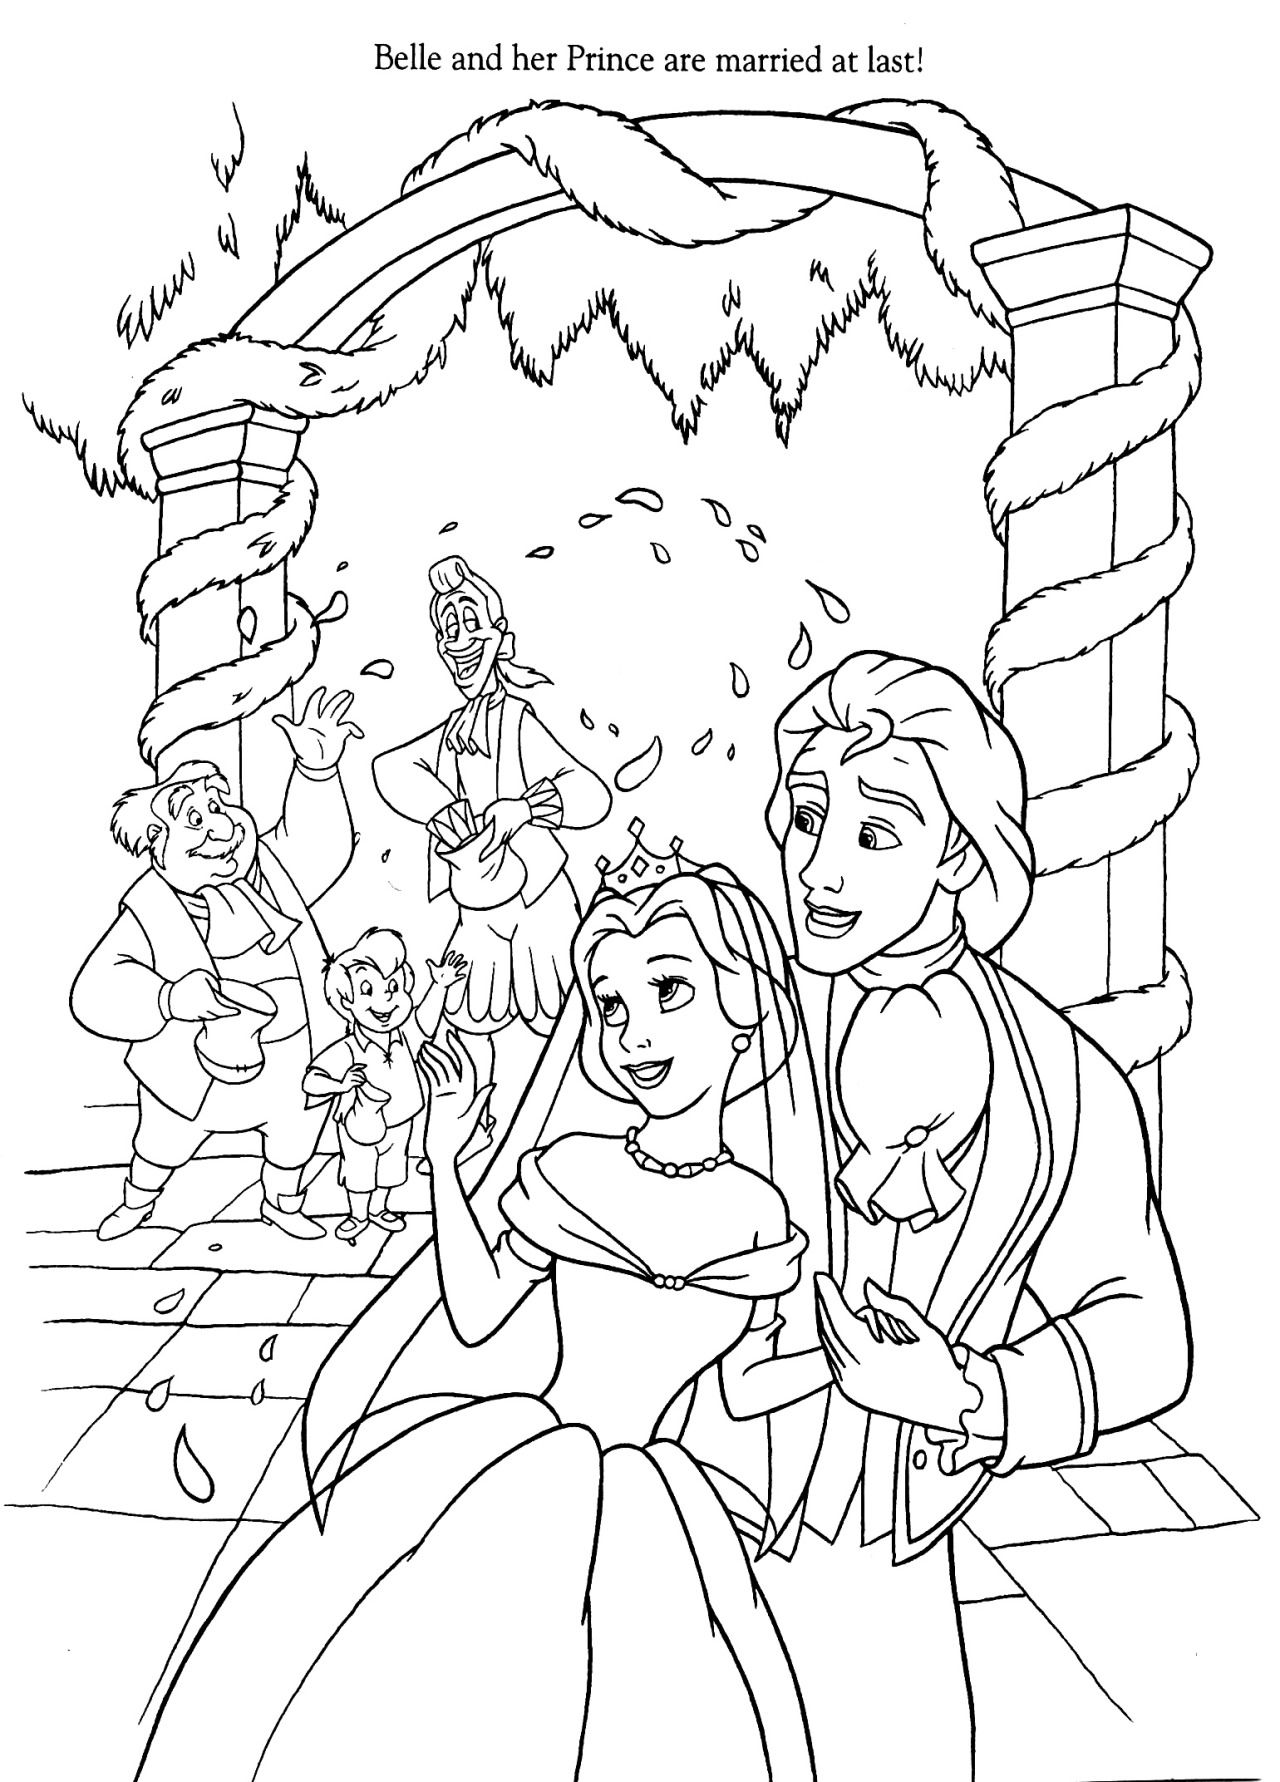 Belle And The Prince Married Disney Coloring Pages Wedding